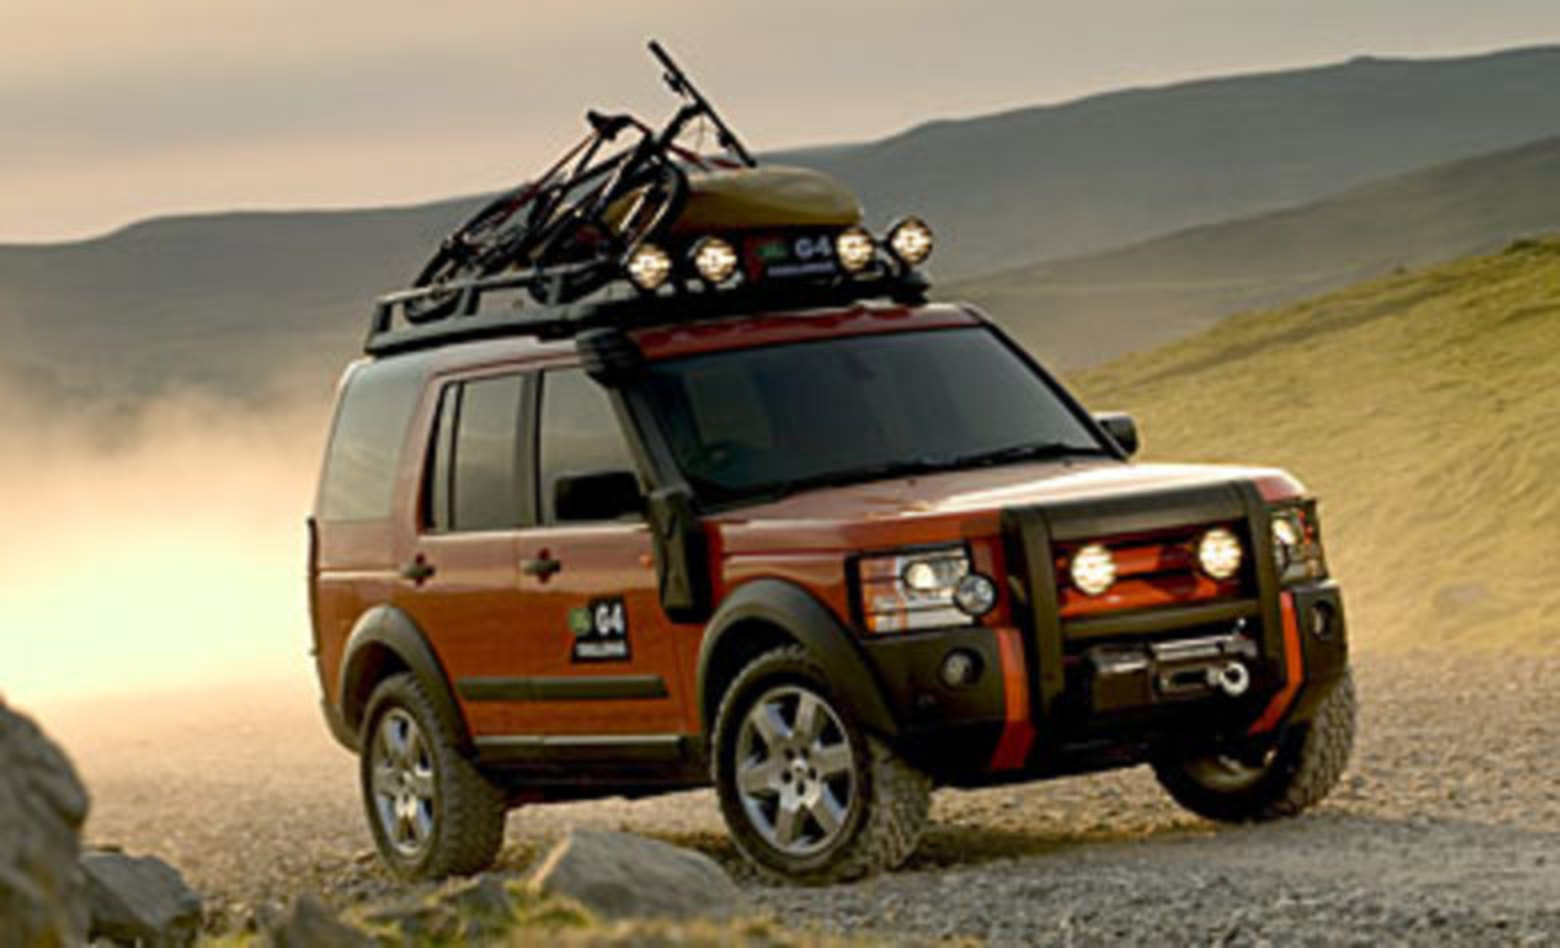 Land Rover LR3 Test Drive and Trim Kits. I'm a Land Rover enthusiast,